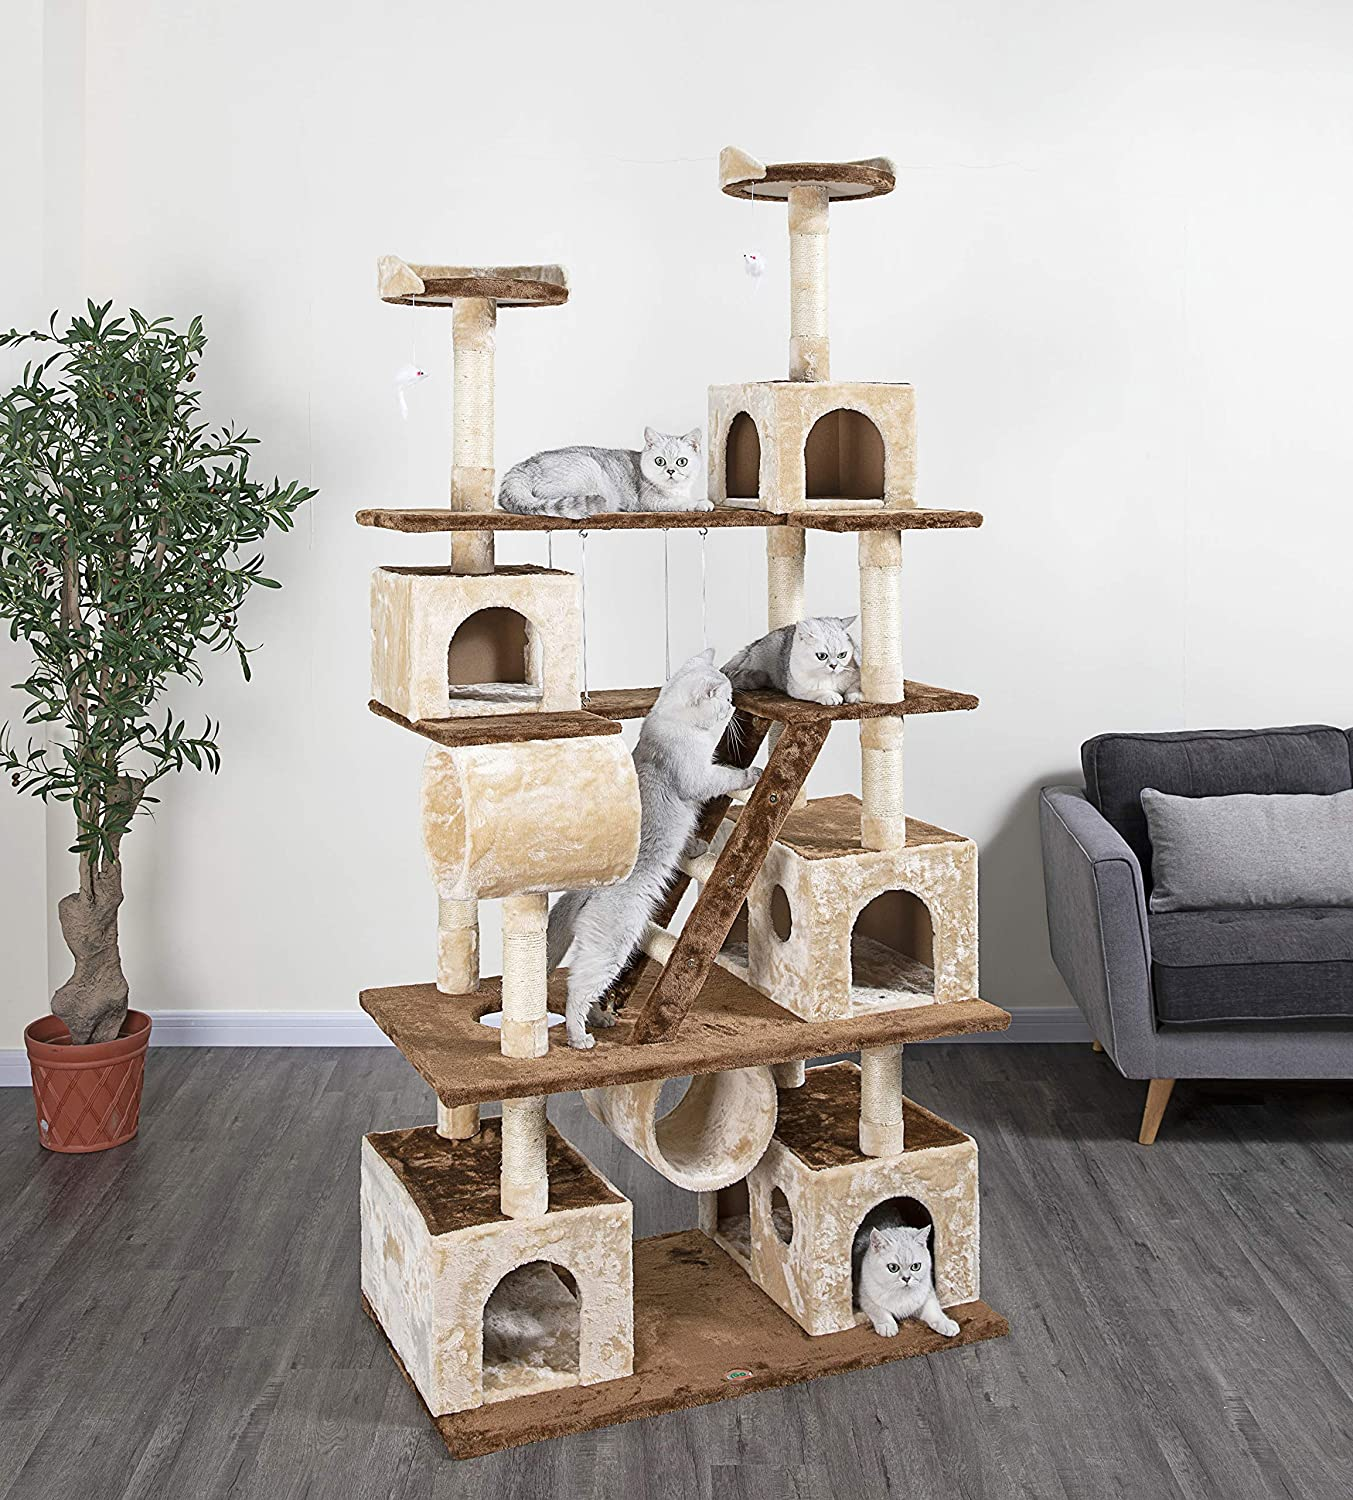 Go Pet Club Huge 87 Tall Cat Tree House Climber Furniture With Swing Pet Supplies